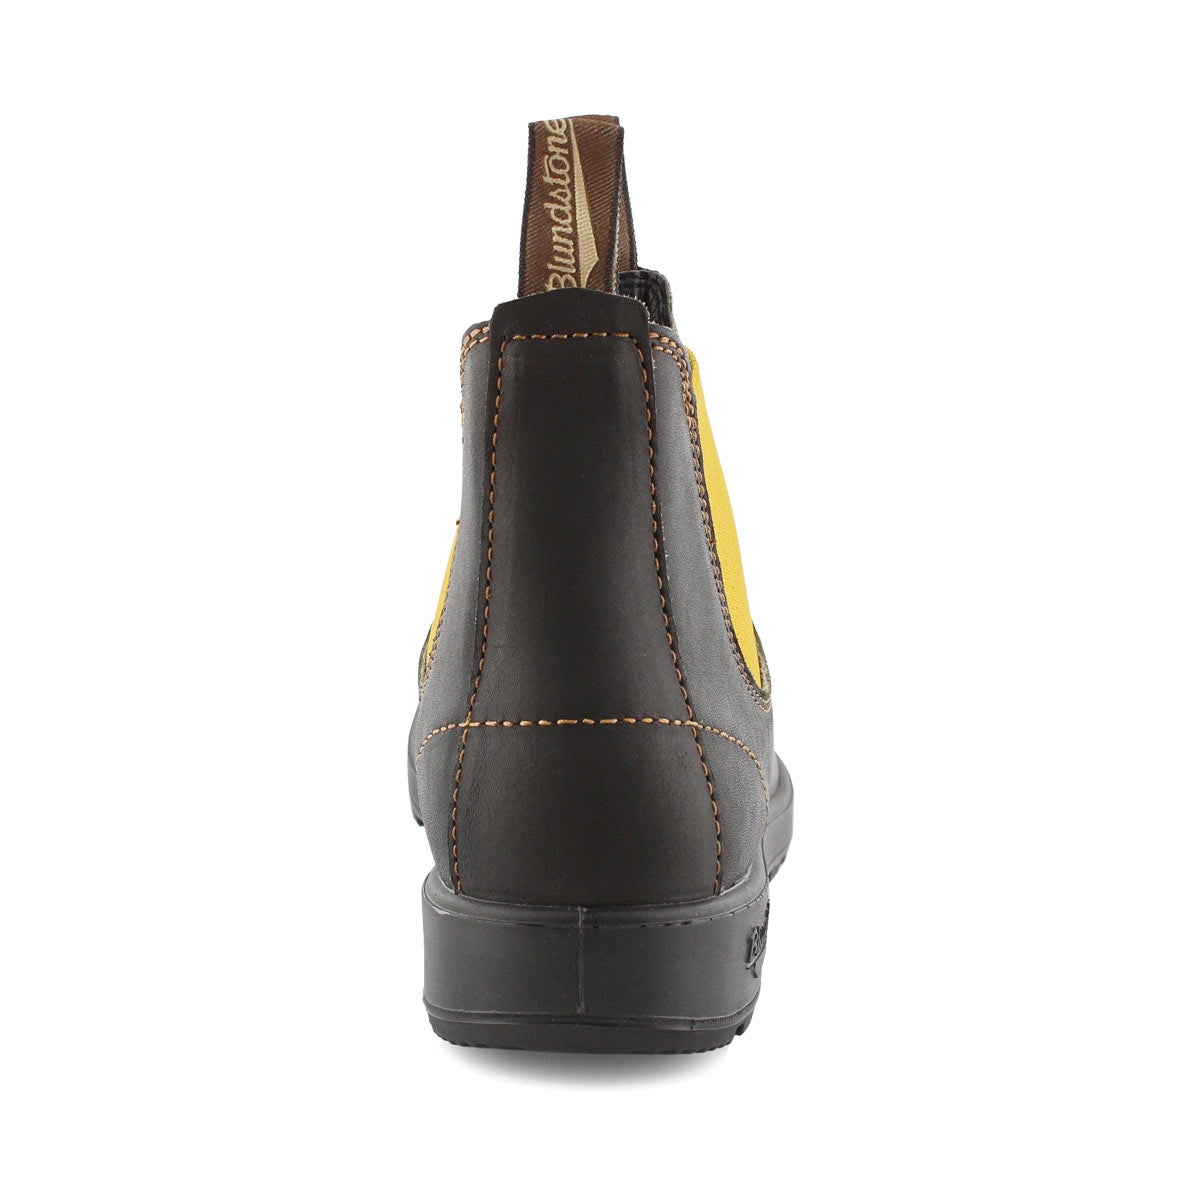 Unisex Original stout brn twin gore boot